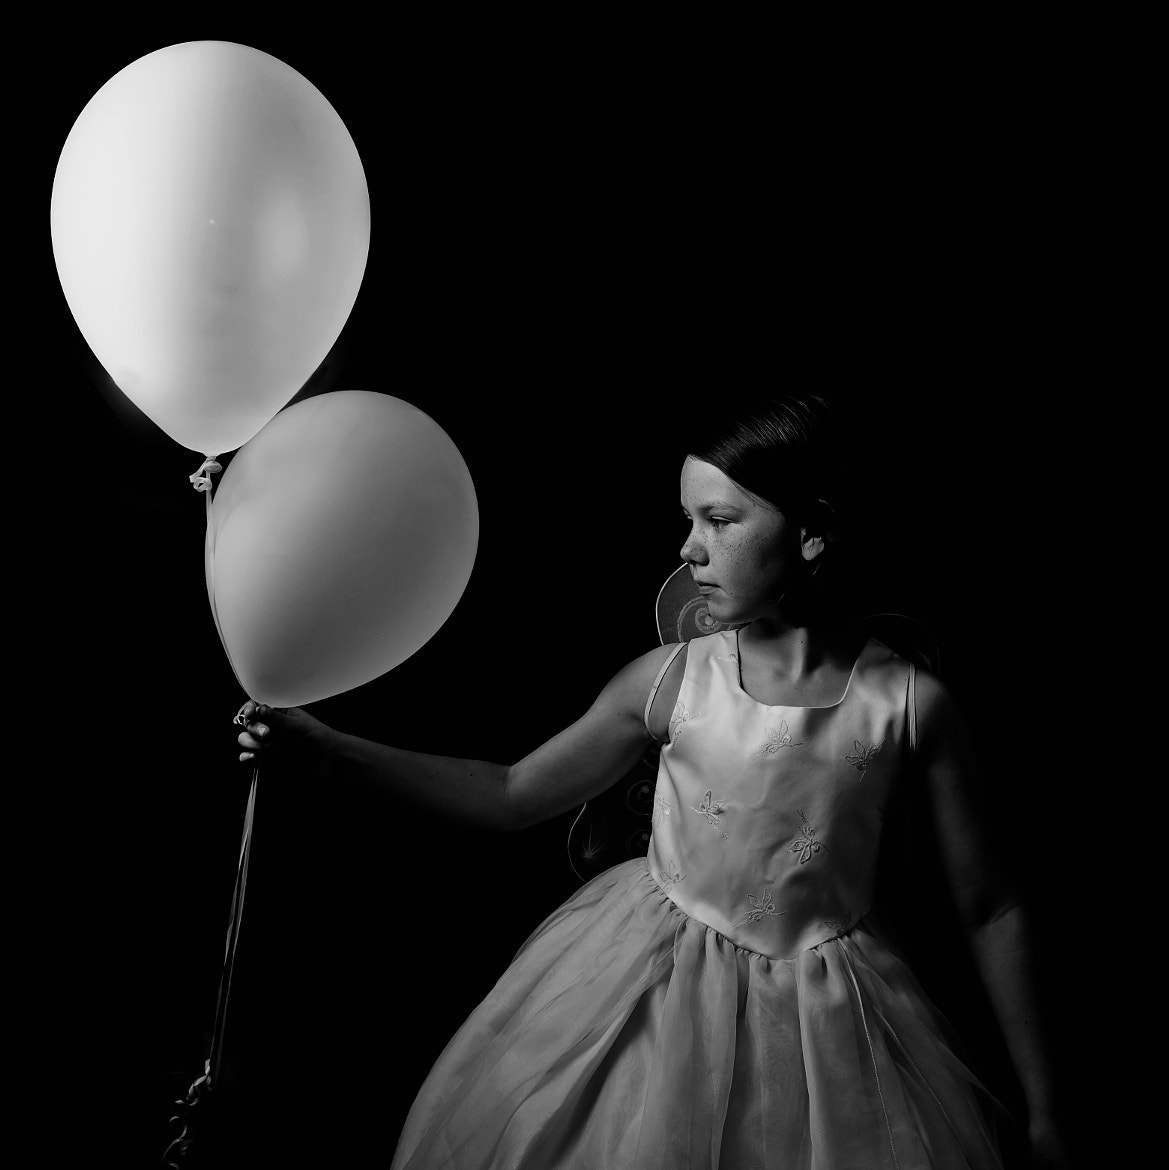 Photograph Two Balloons by Dee McIntosh on 500px